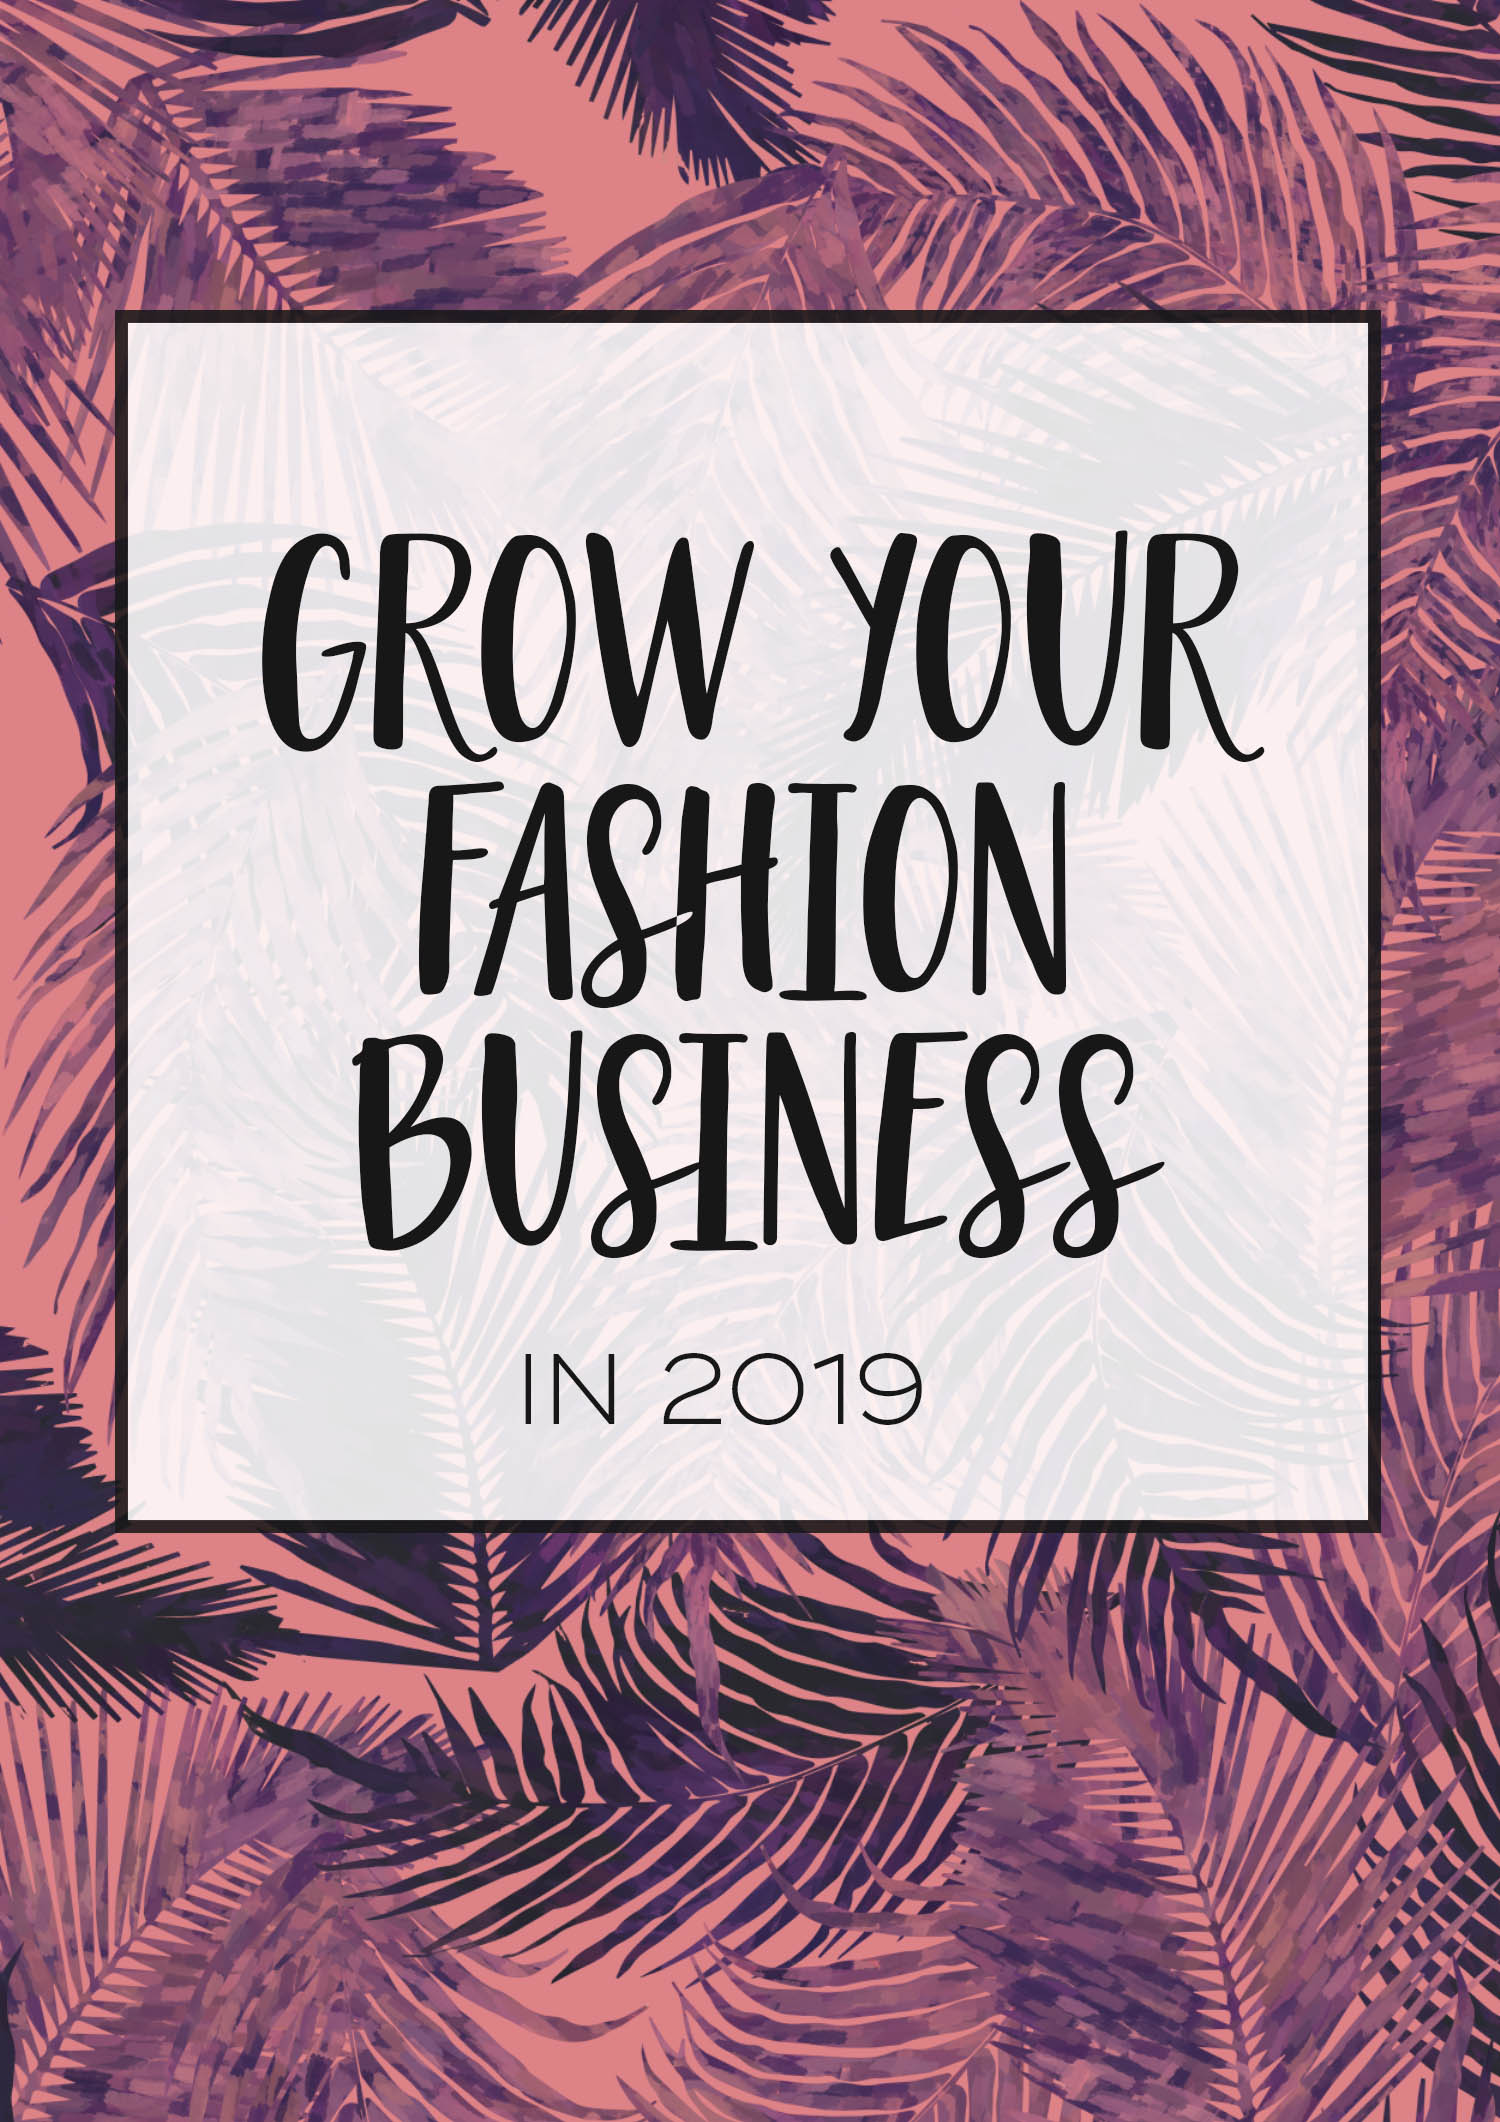 How To Grow Your Fashion Business In 2019 The Fashion Business Coach